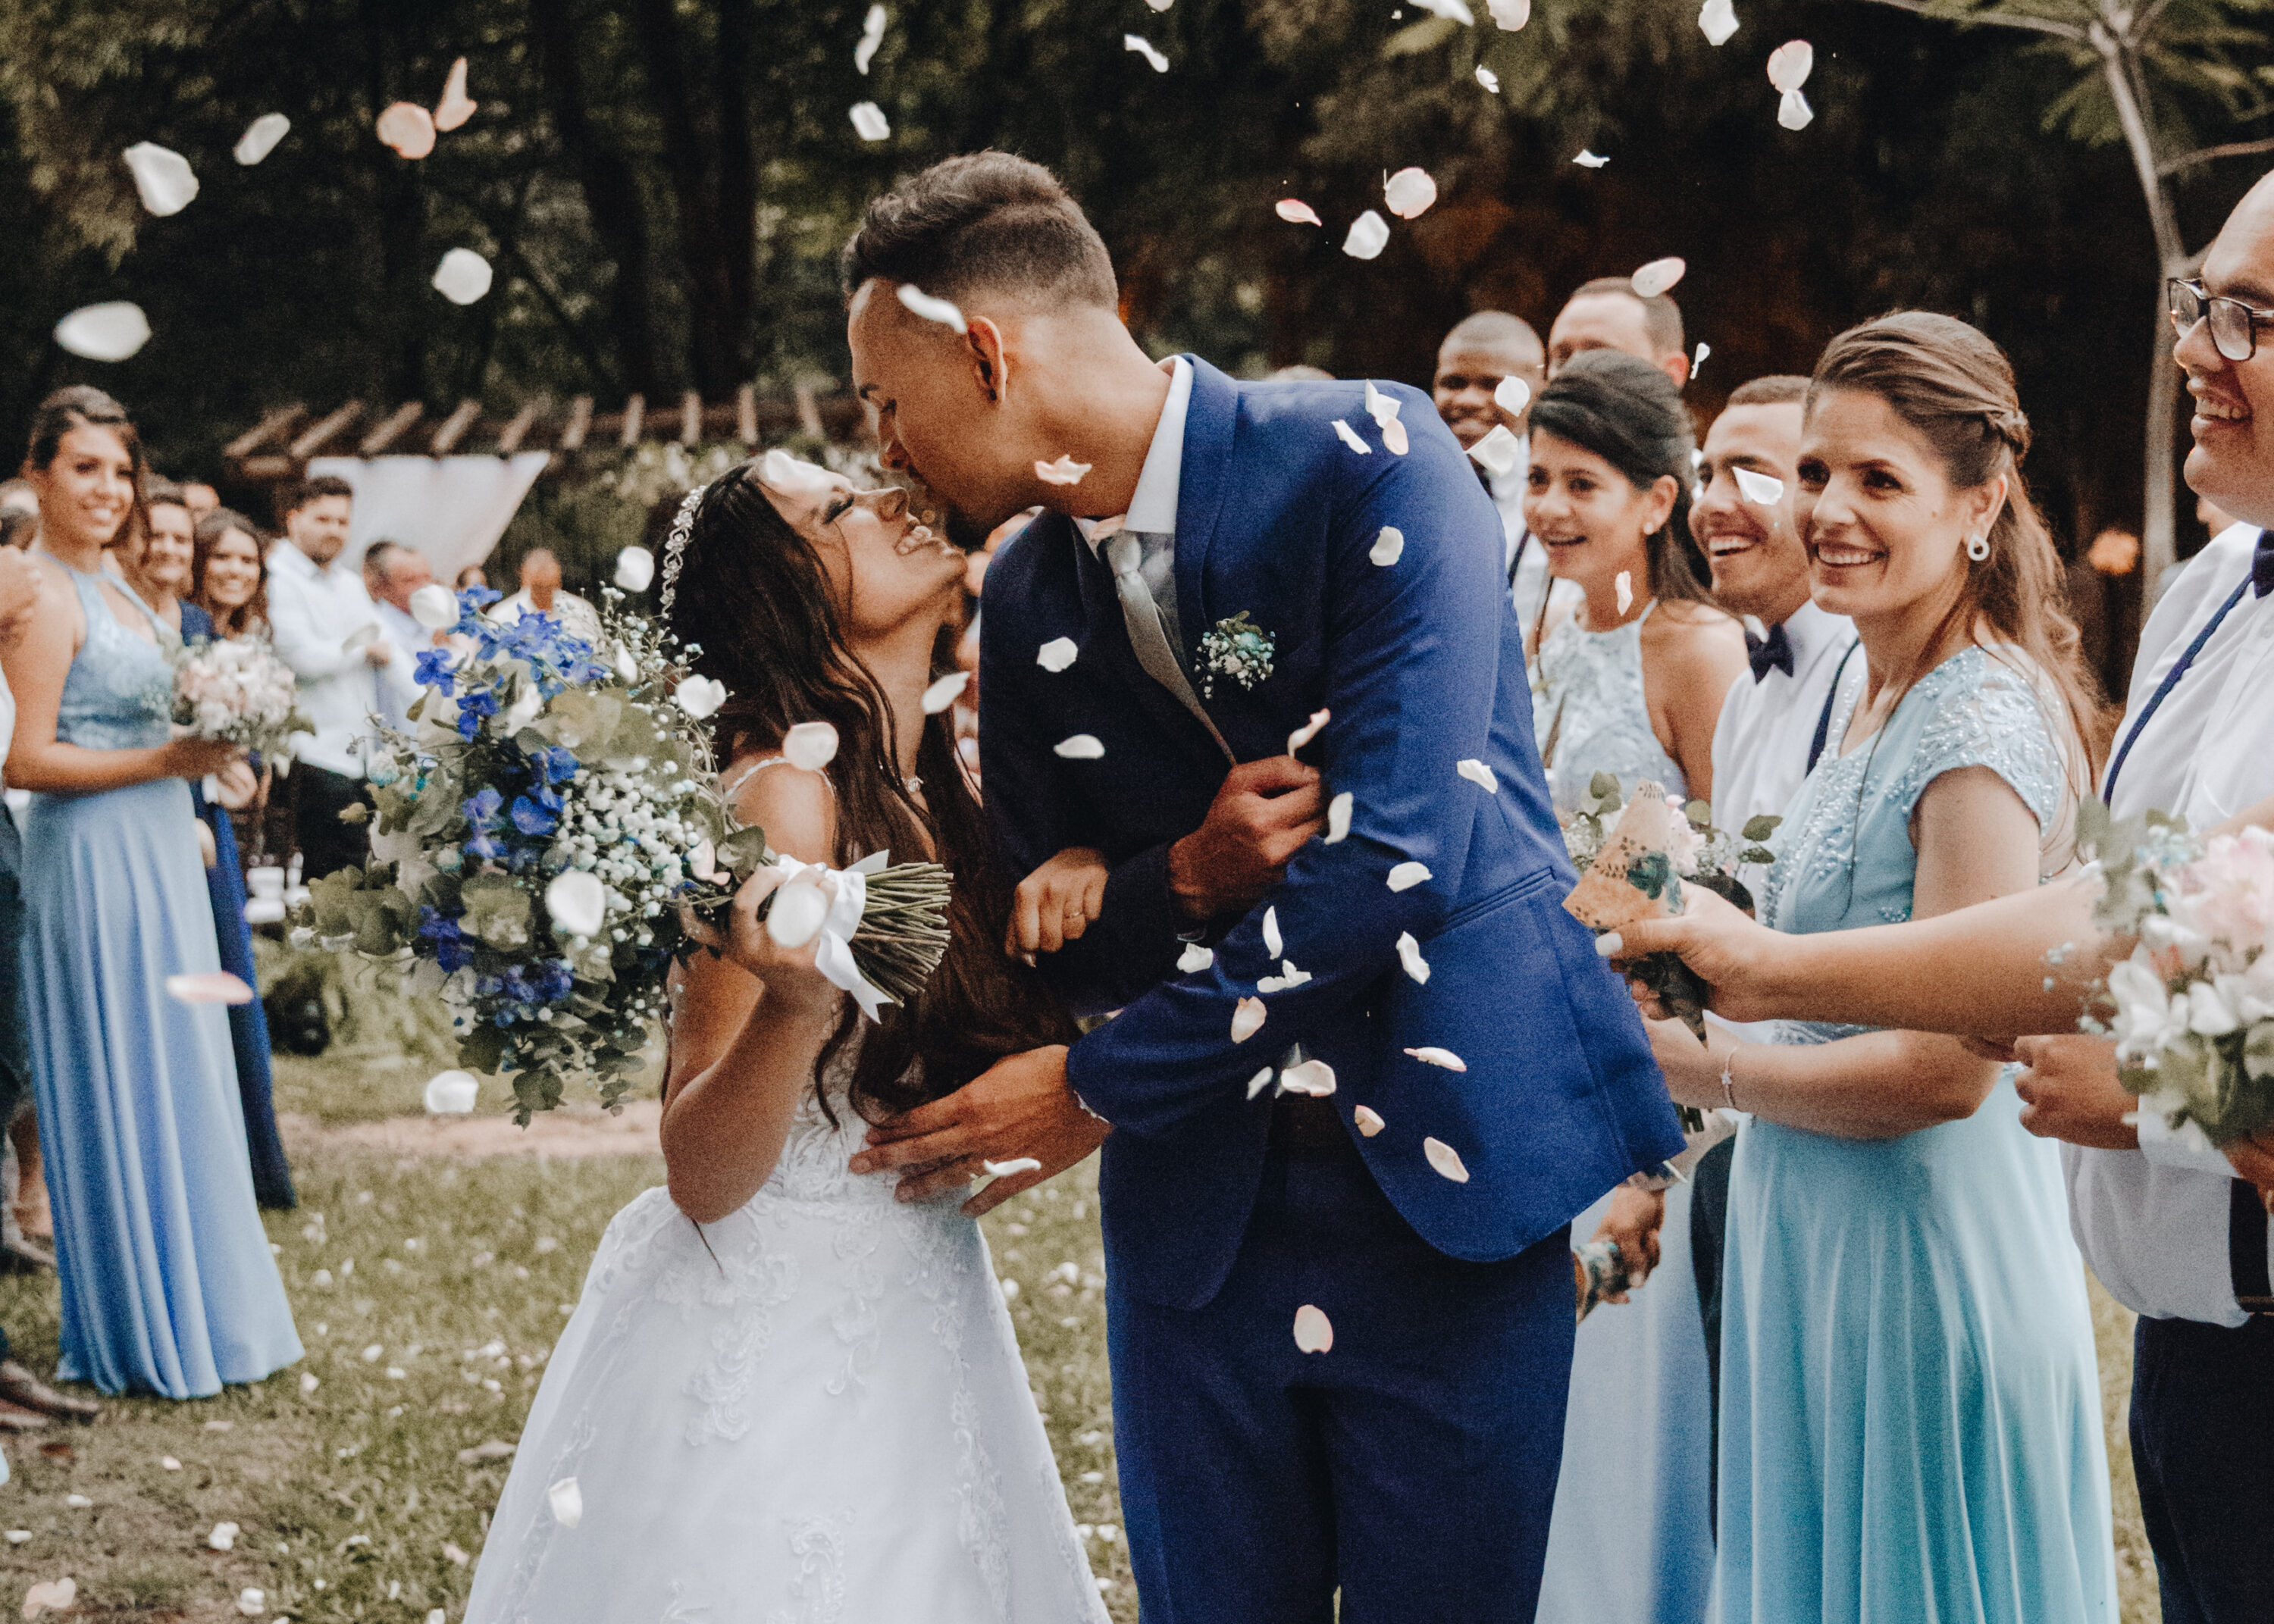 Outdoor Wedding Photographer - Perfect Story Photography